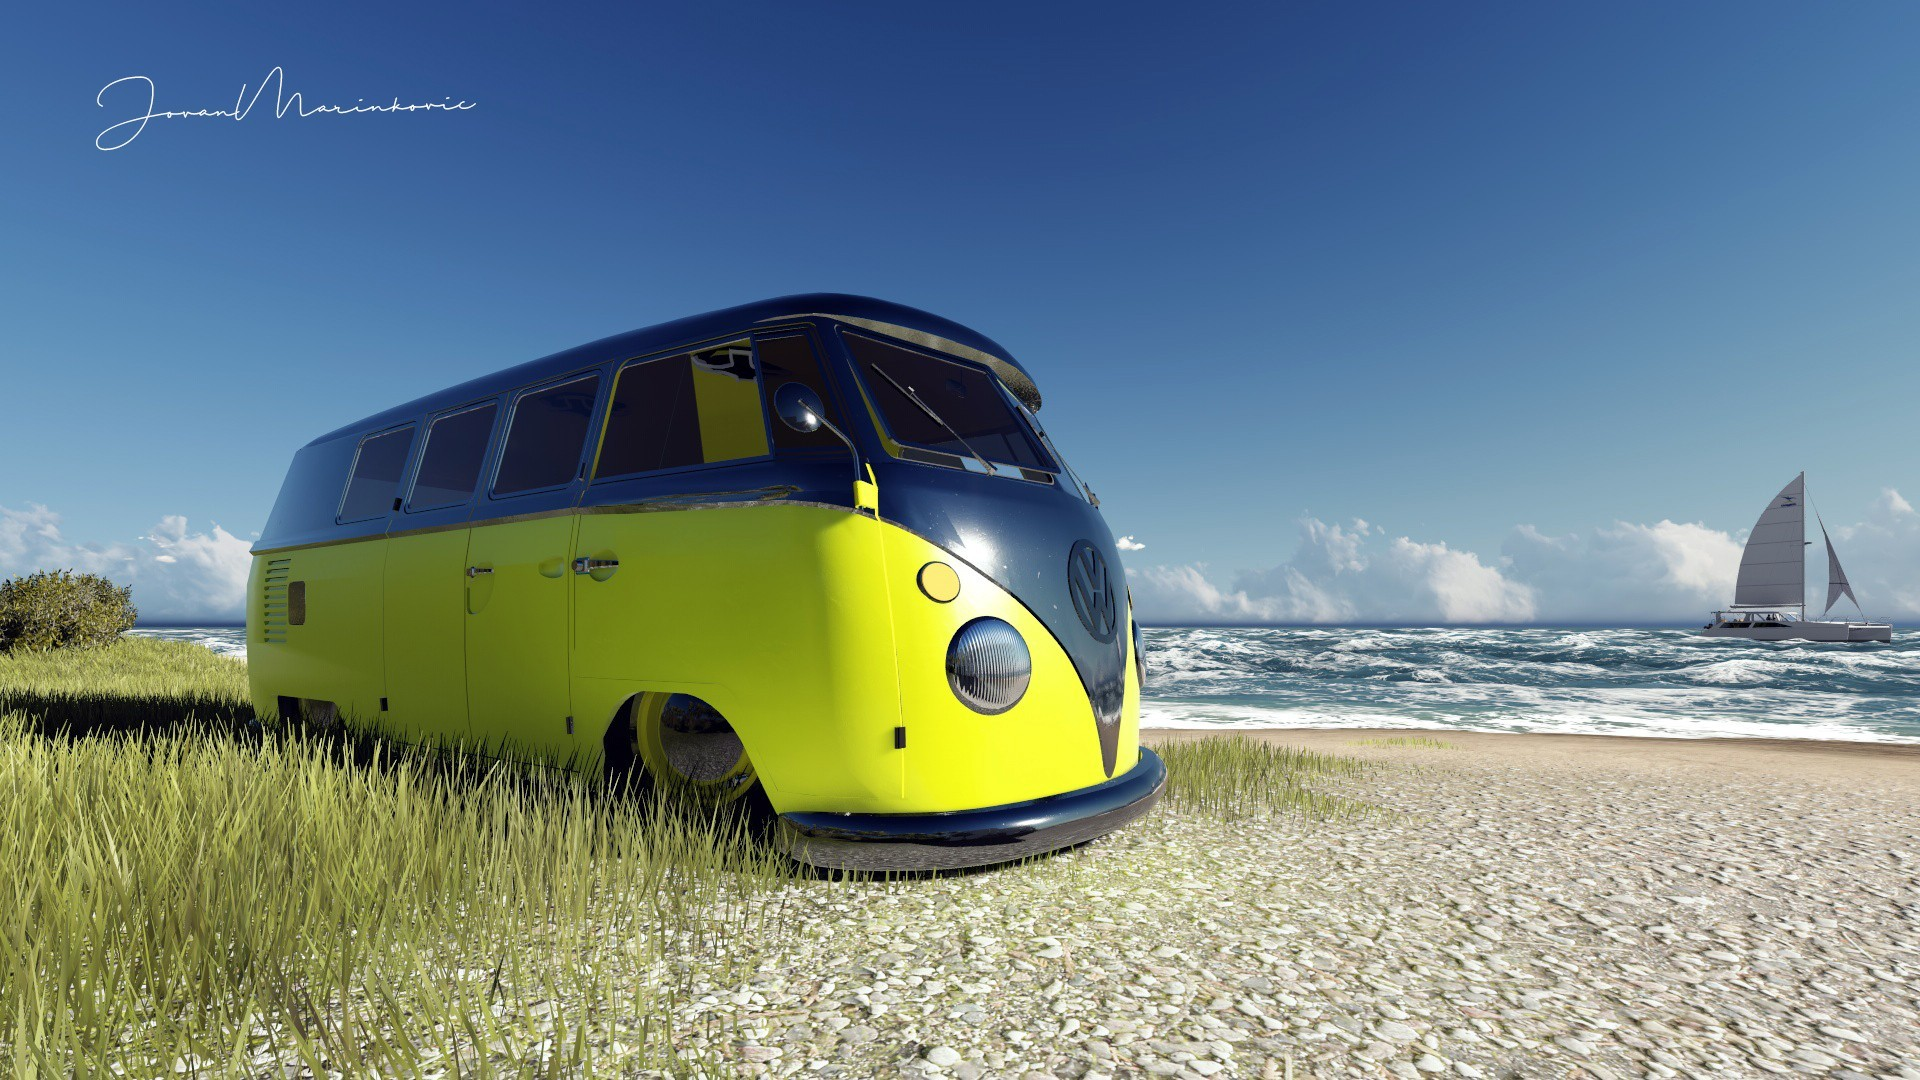 Toy Car Wallpaper Vw Bus Wallpaper 183 ①